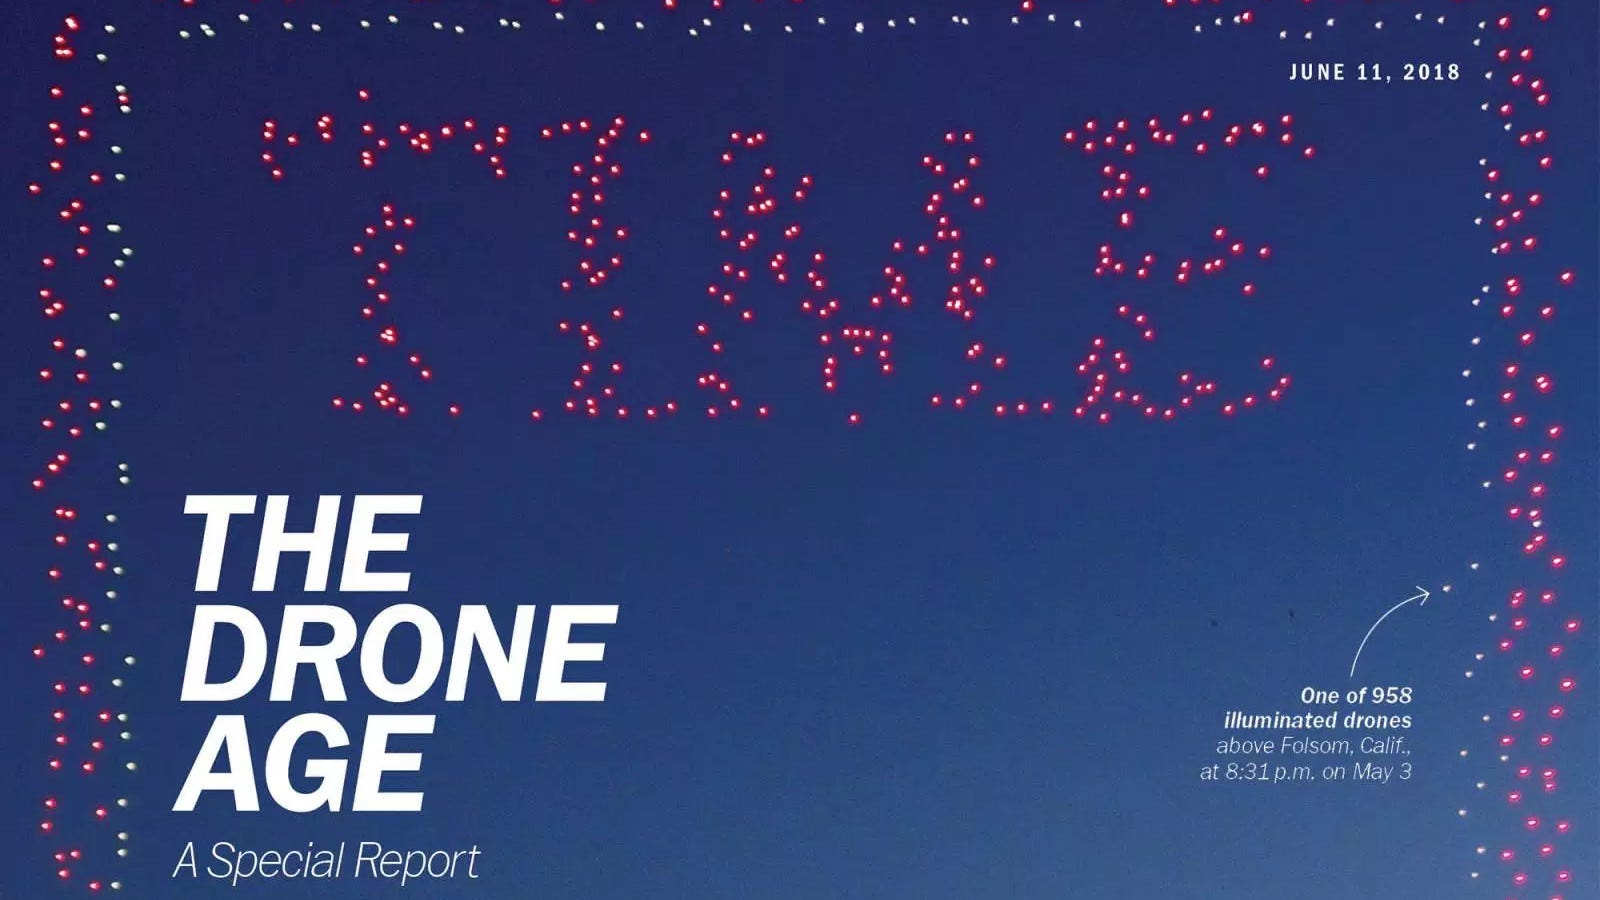 Watch How TIME Created A Cover Out Of 958 Drones